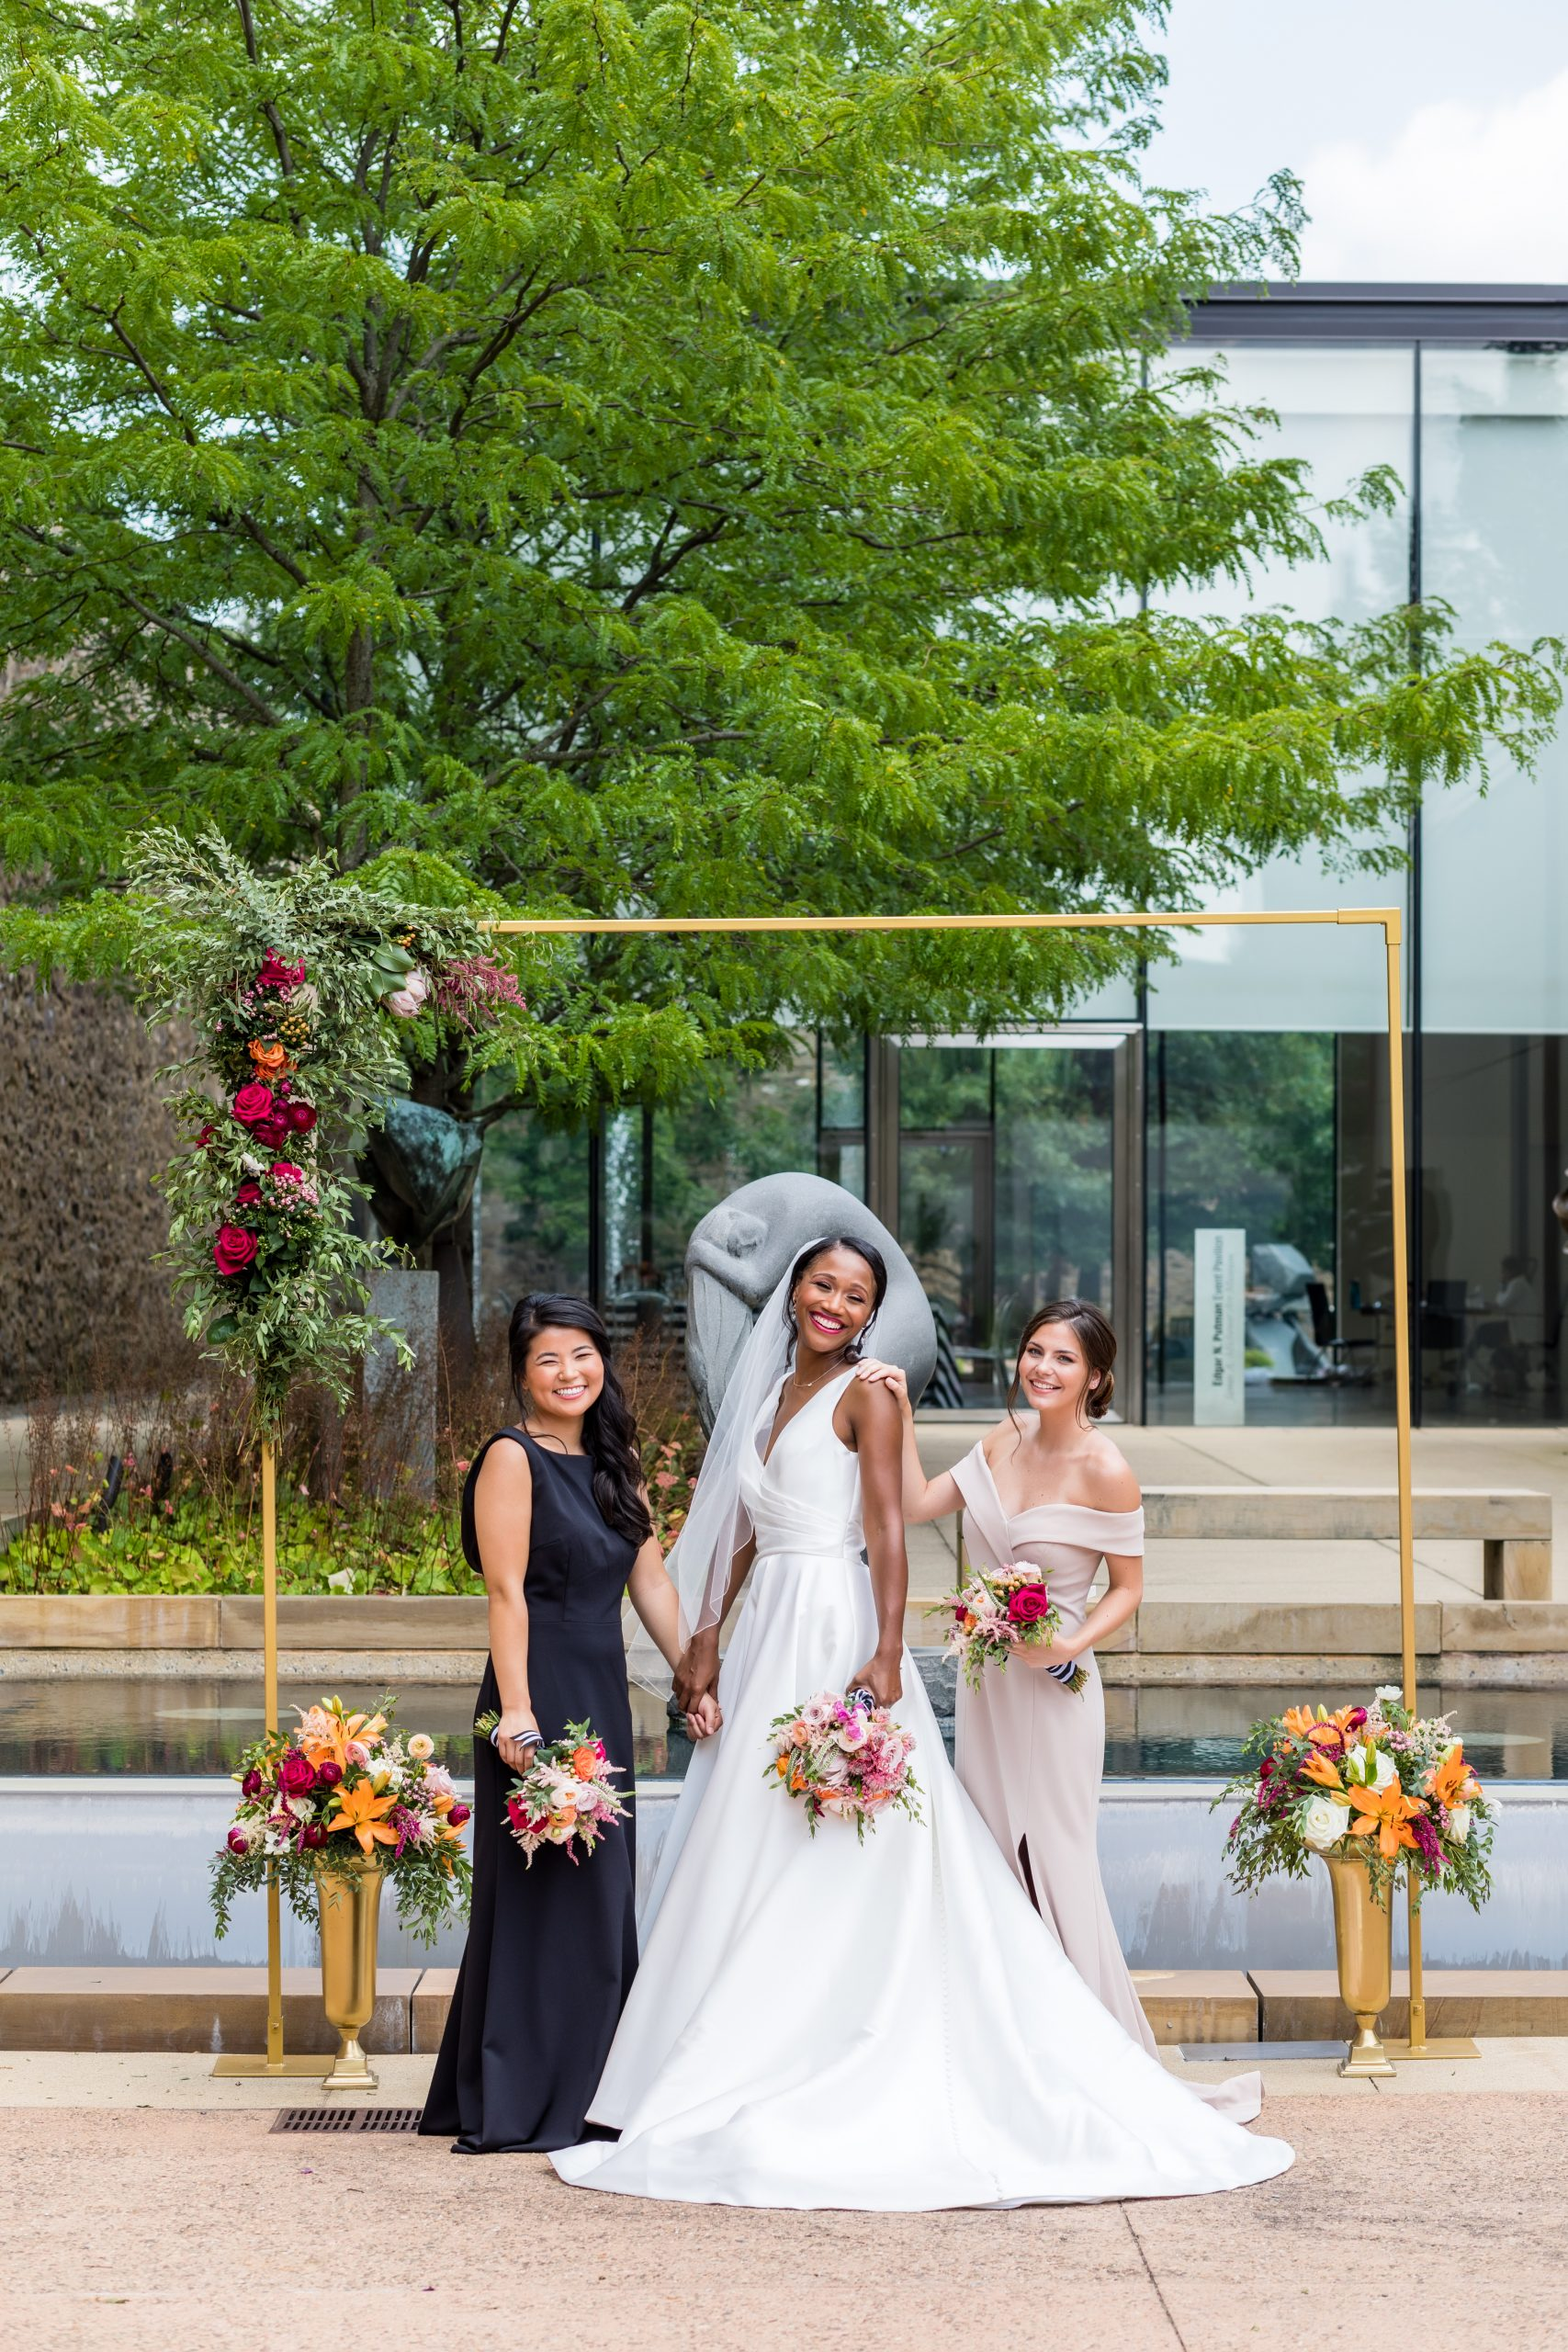 Sisterhood of the bridal party framed in gold with floral accents at the Michener Museum styled urban contemporary shoot for Ashley Gerrity Photography this past Summer. Featured on Dream Weddings.